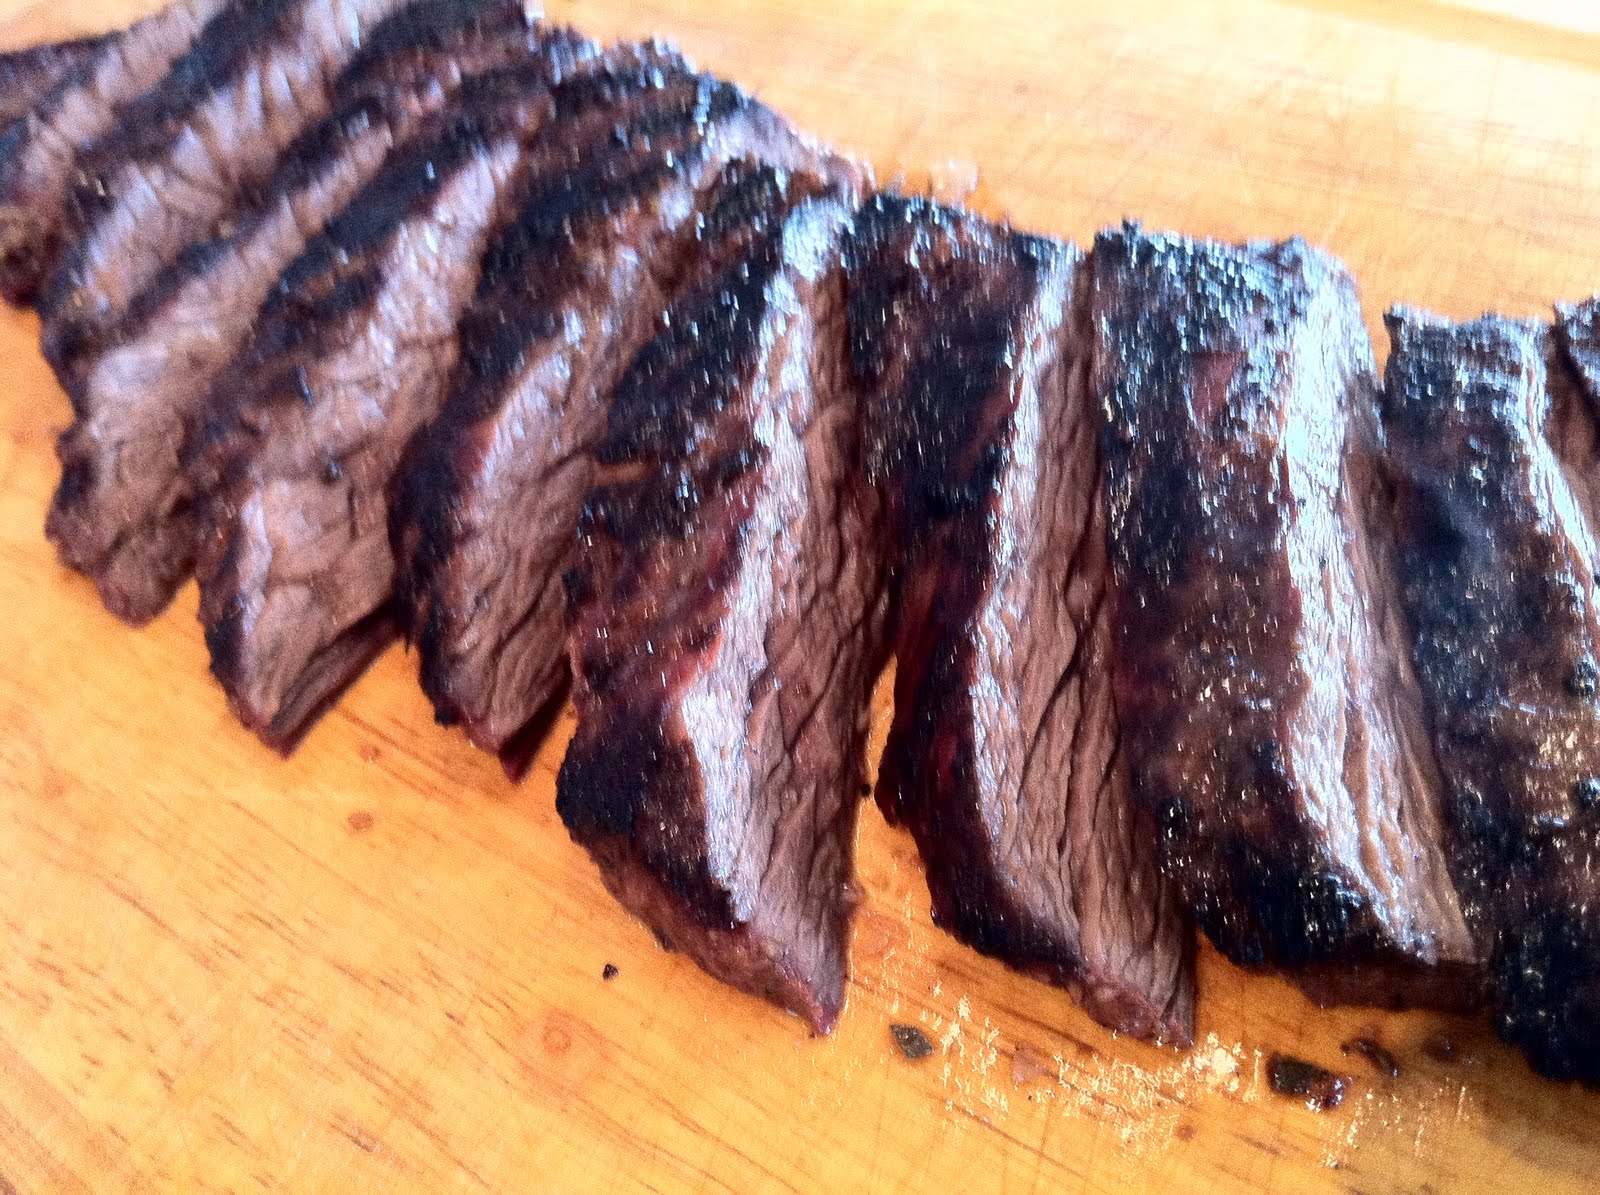 Recipes from 4EveryKitchen: Grilled Rosemary & Garlic Skirt Steak